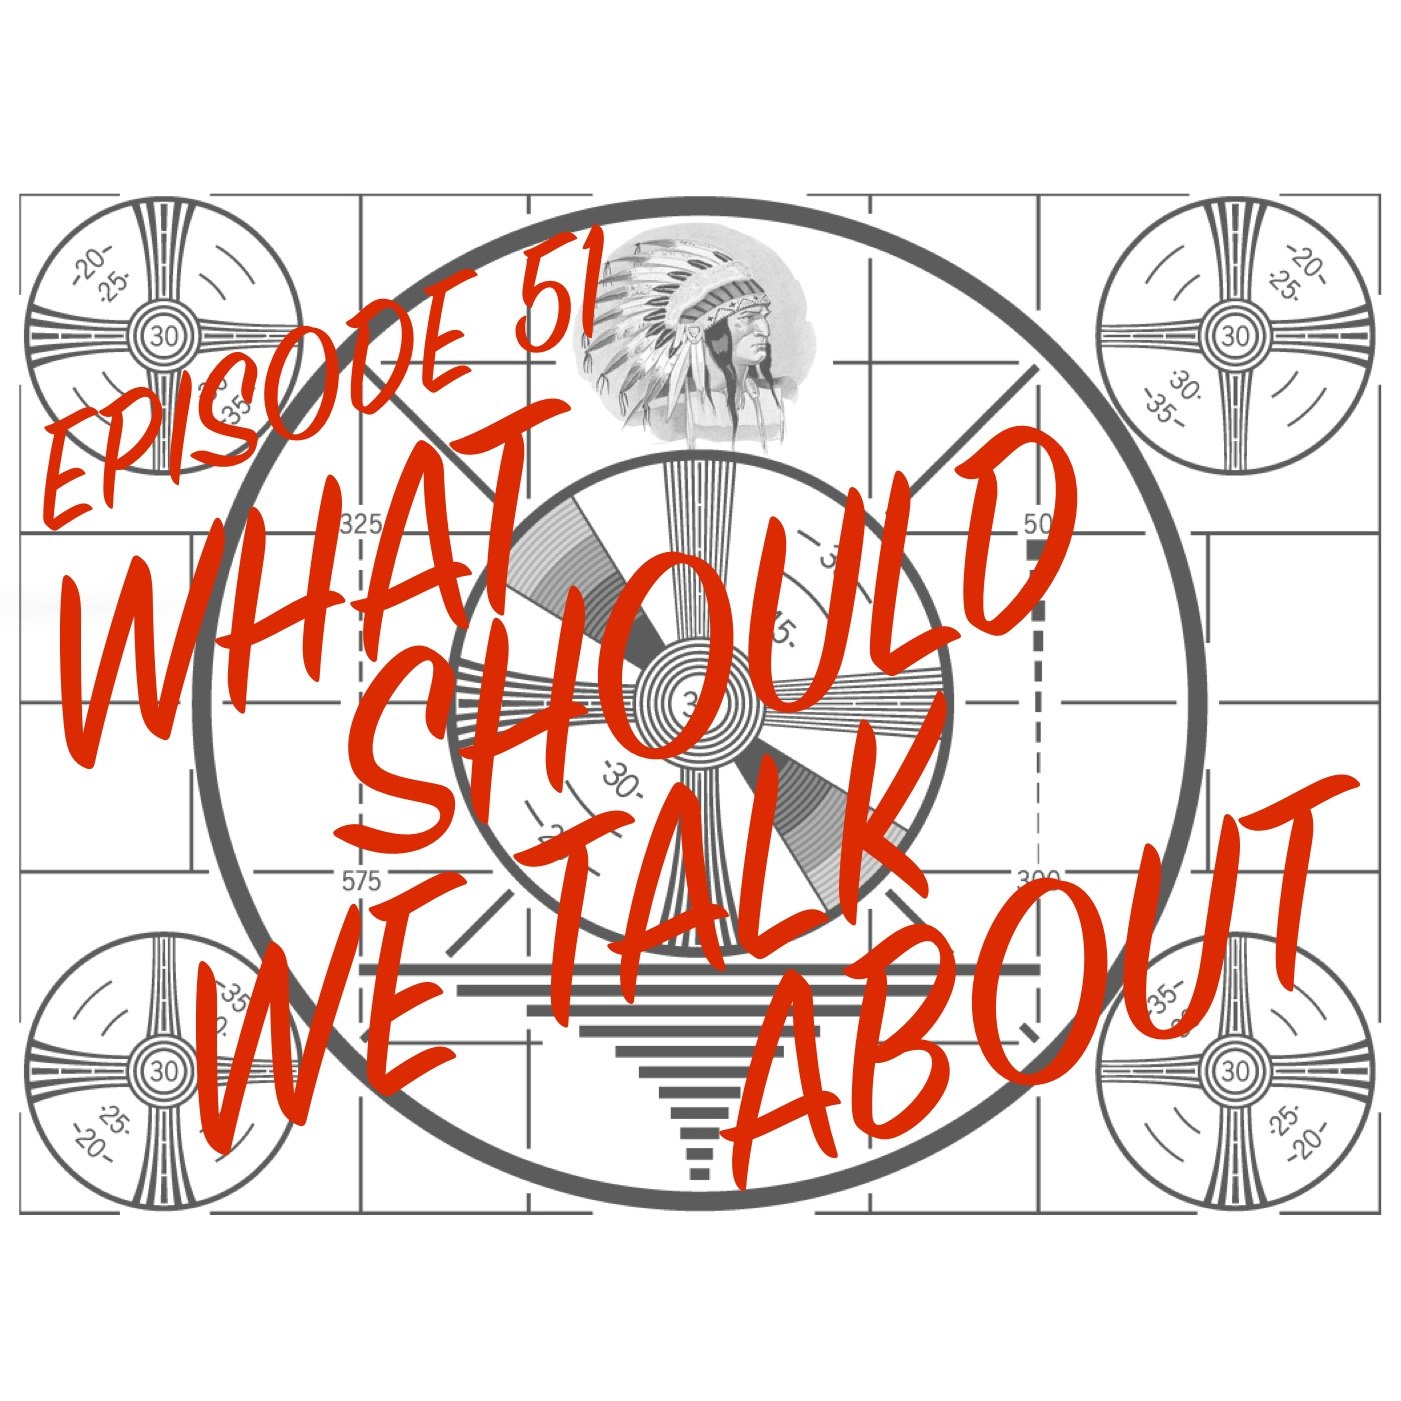 Episode 51 - What Should We Talk About